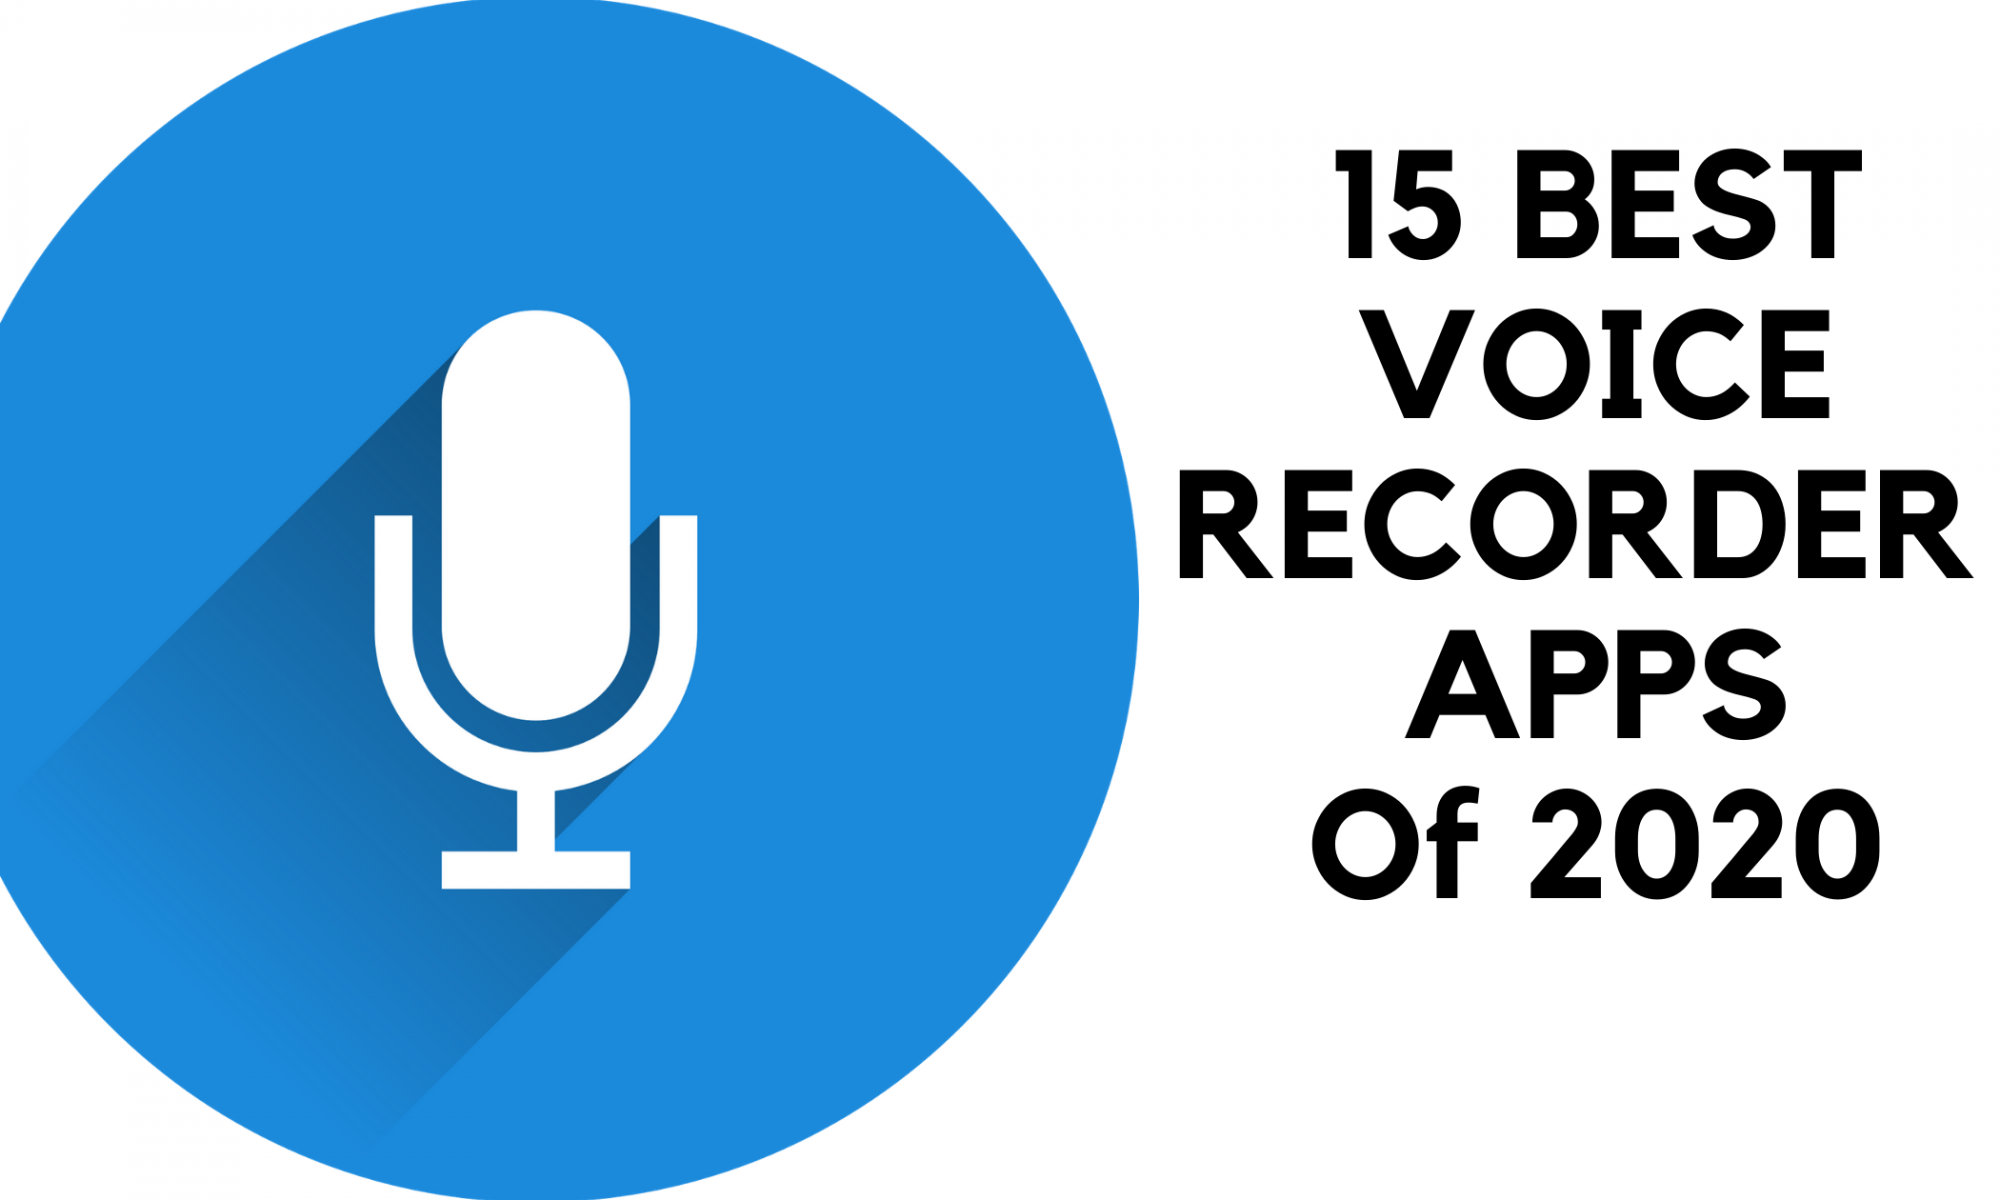 15 best voice recorder apps